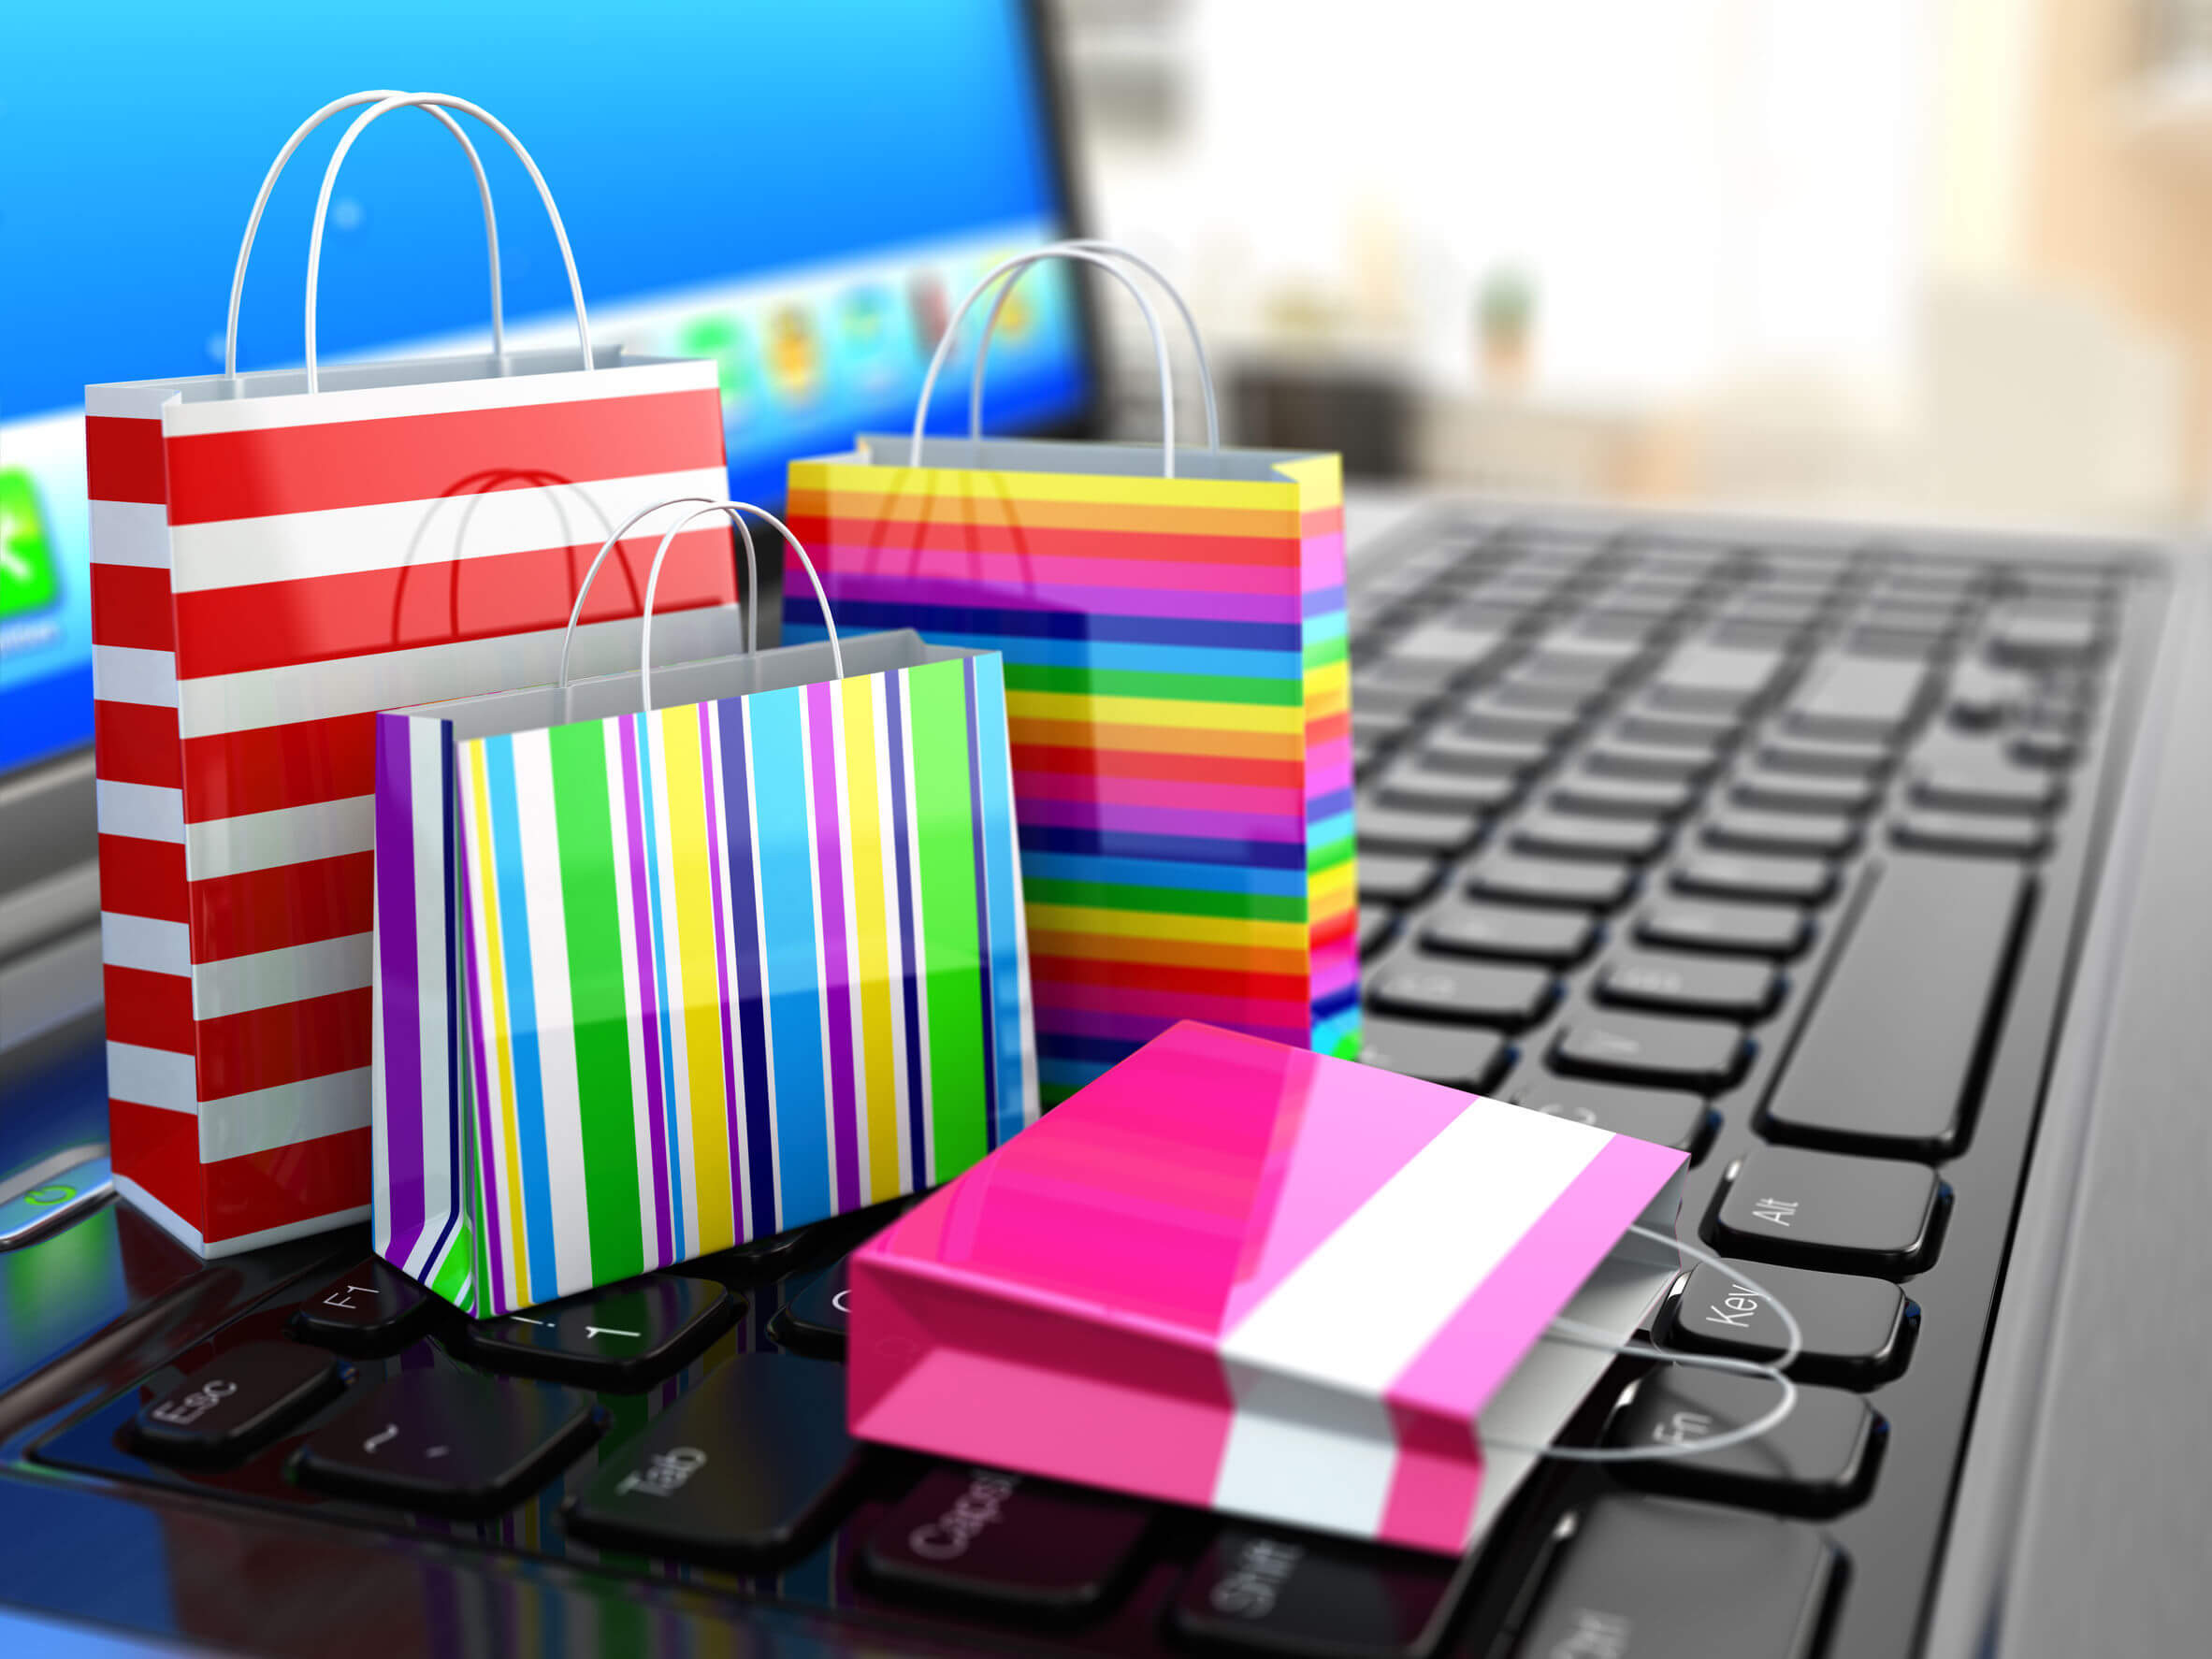 Shopping bags in front of desktop computer